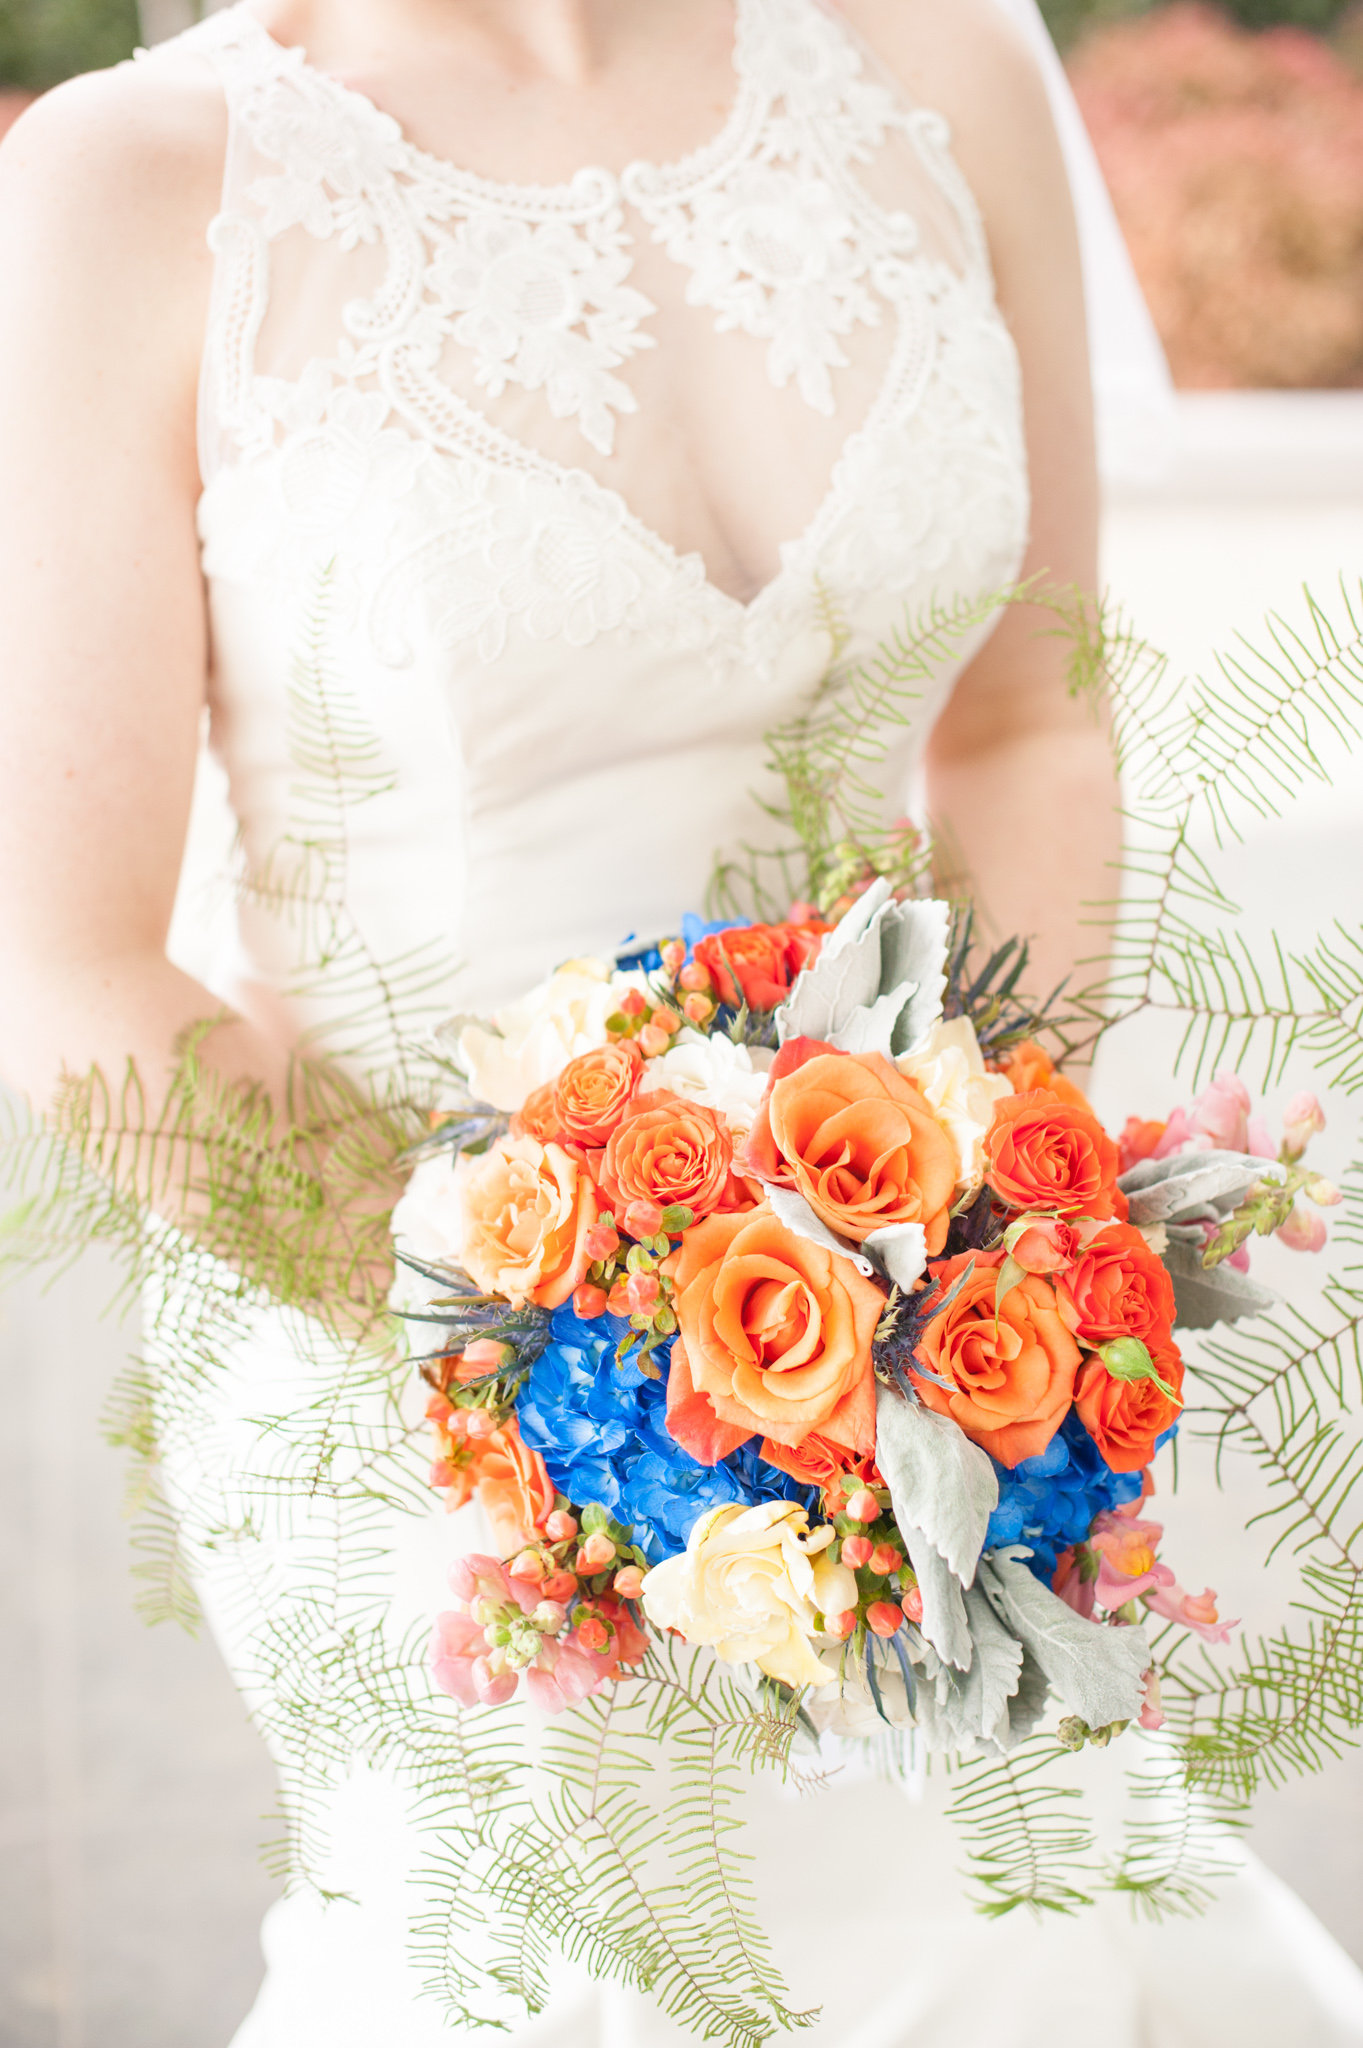 Image courtesy of   Michelle Renee Photography